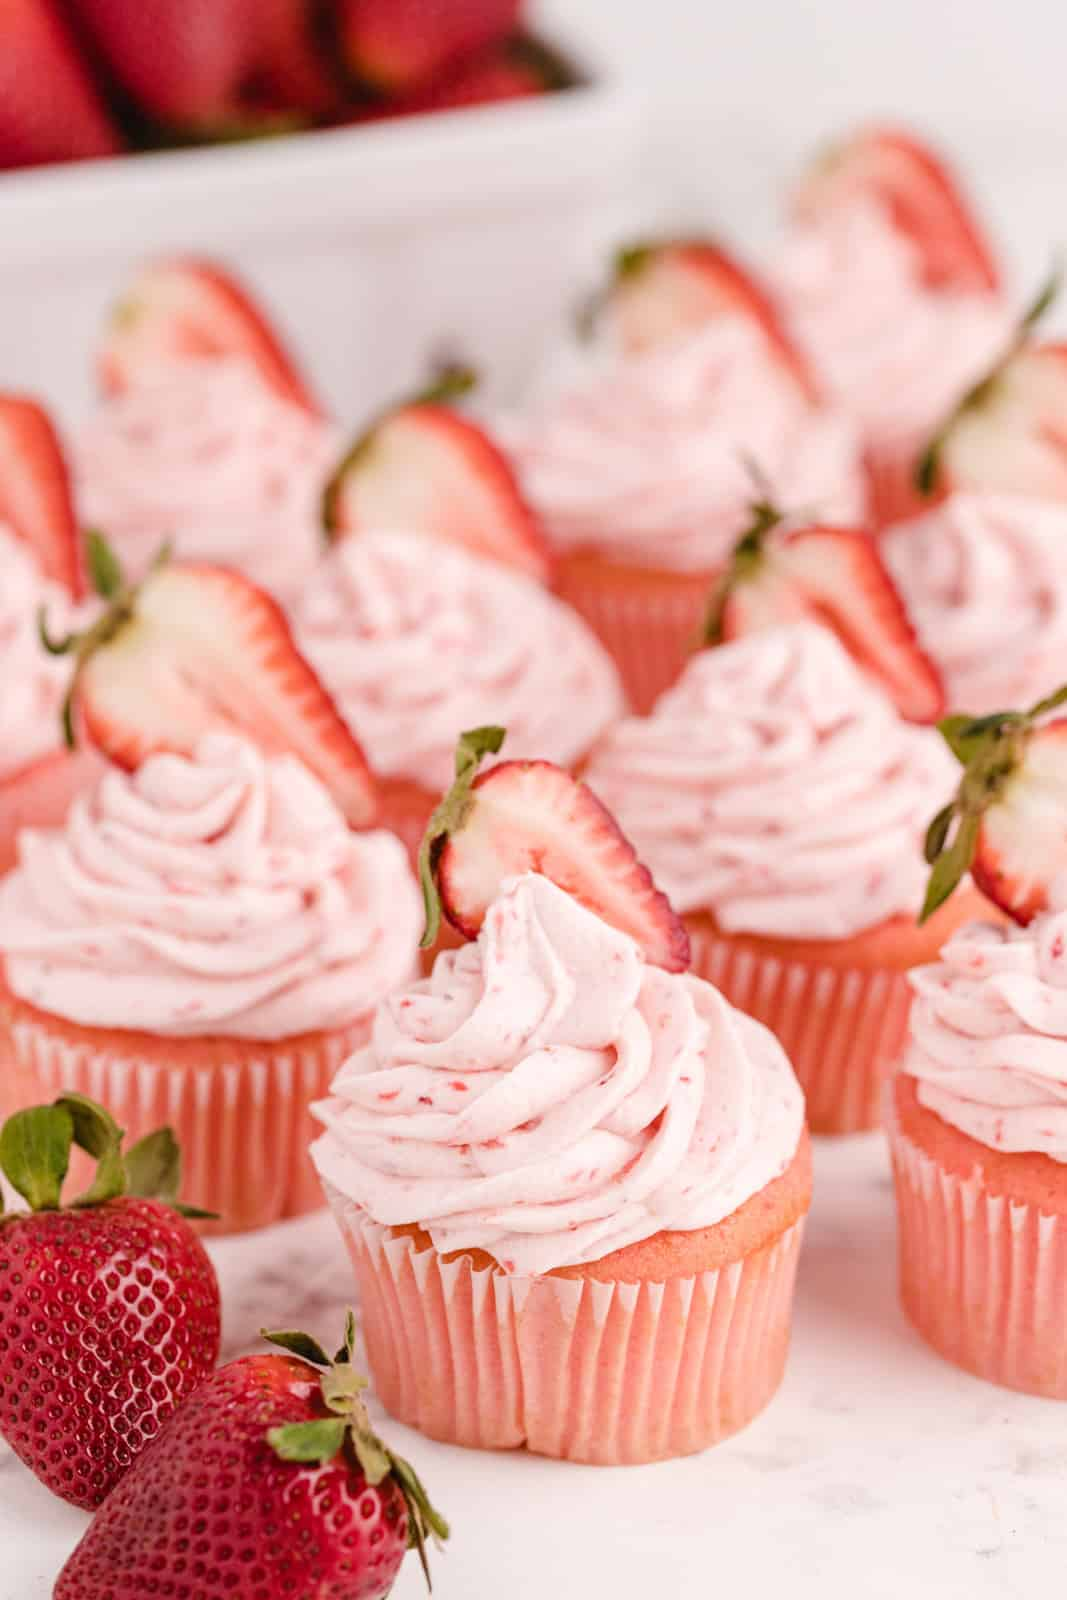 Strawberry Cupcakes on white board with strawberries